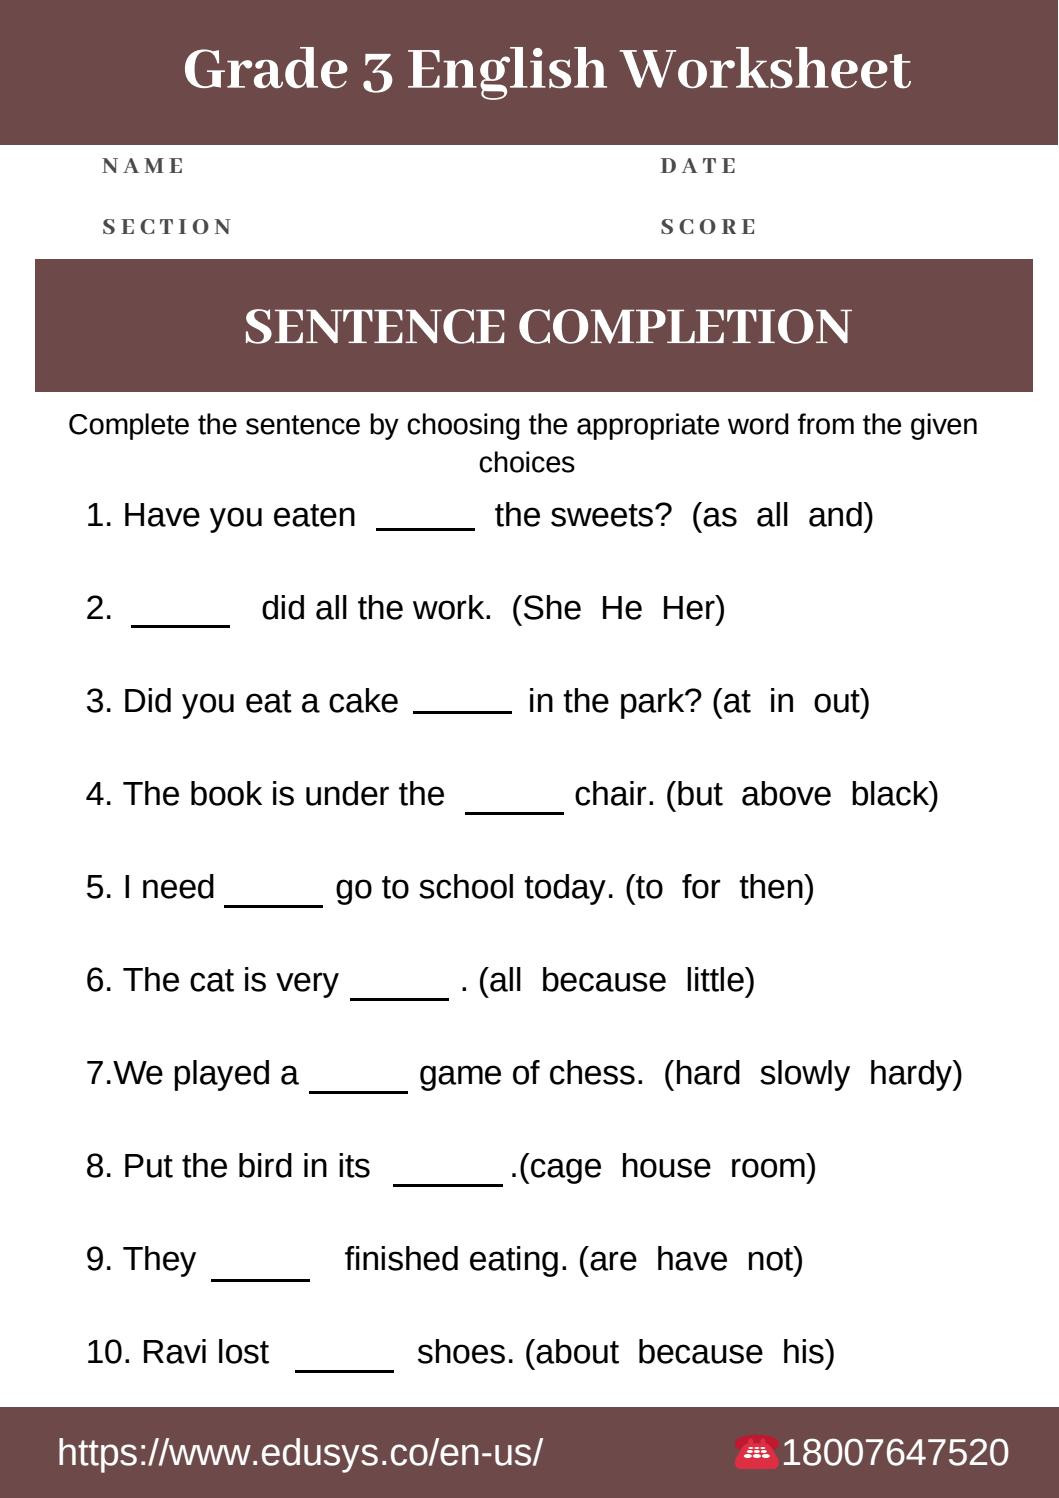 2nd Grade Grammar Worksheets Pdf 3rd Grade English Grammar Worksheet Free Pdf by Nithya issuu